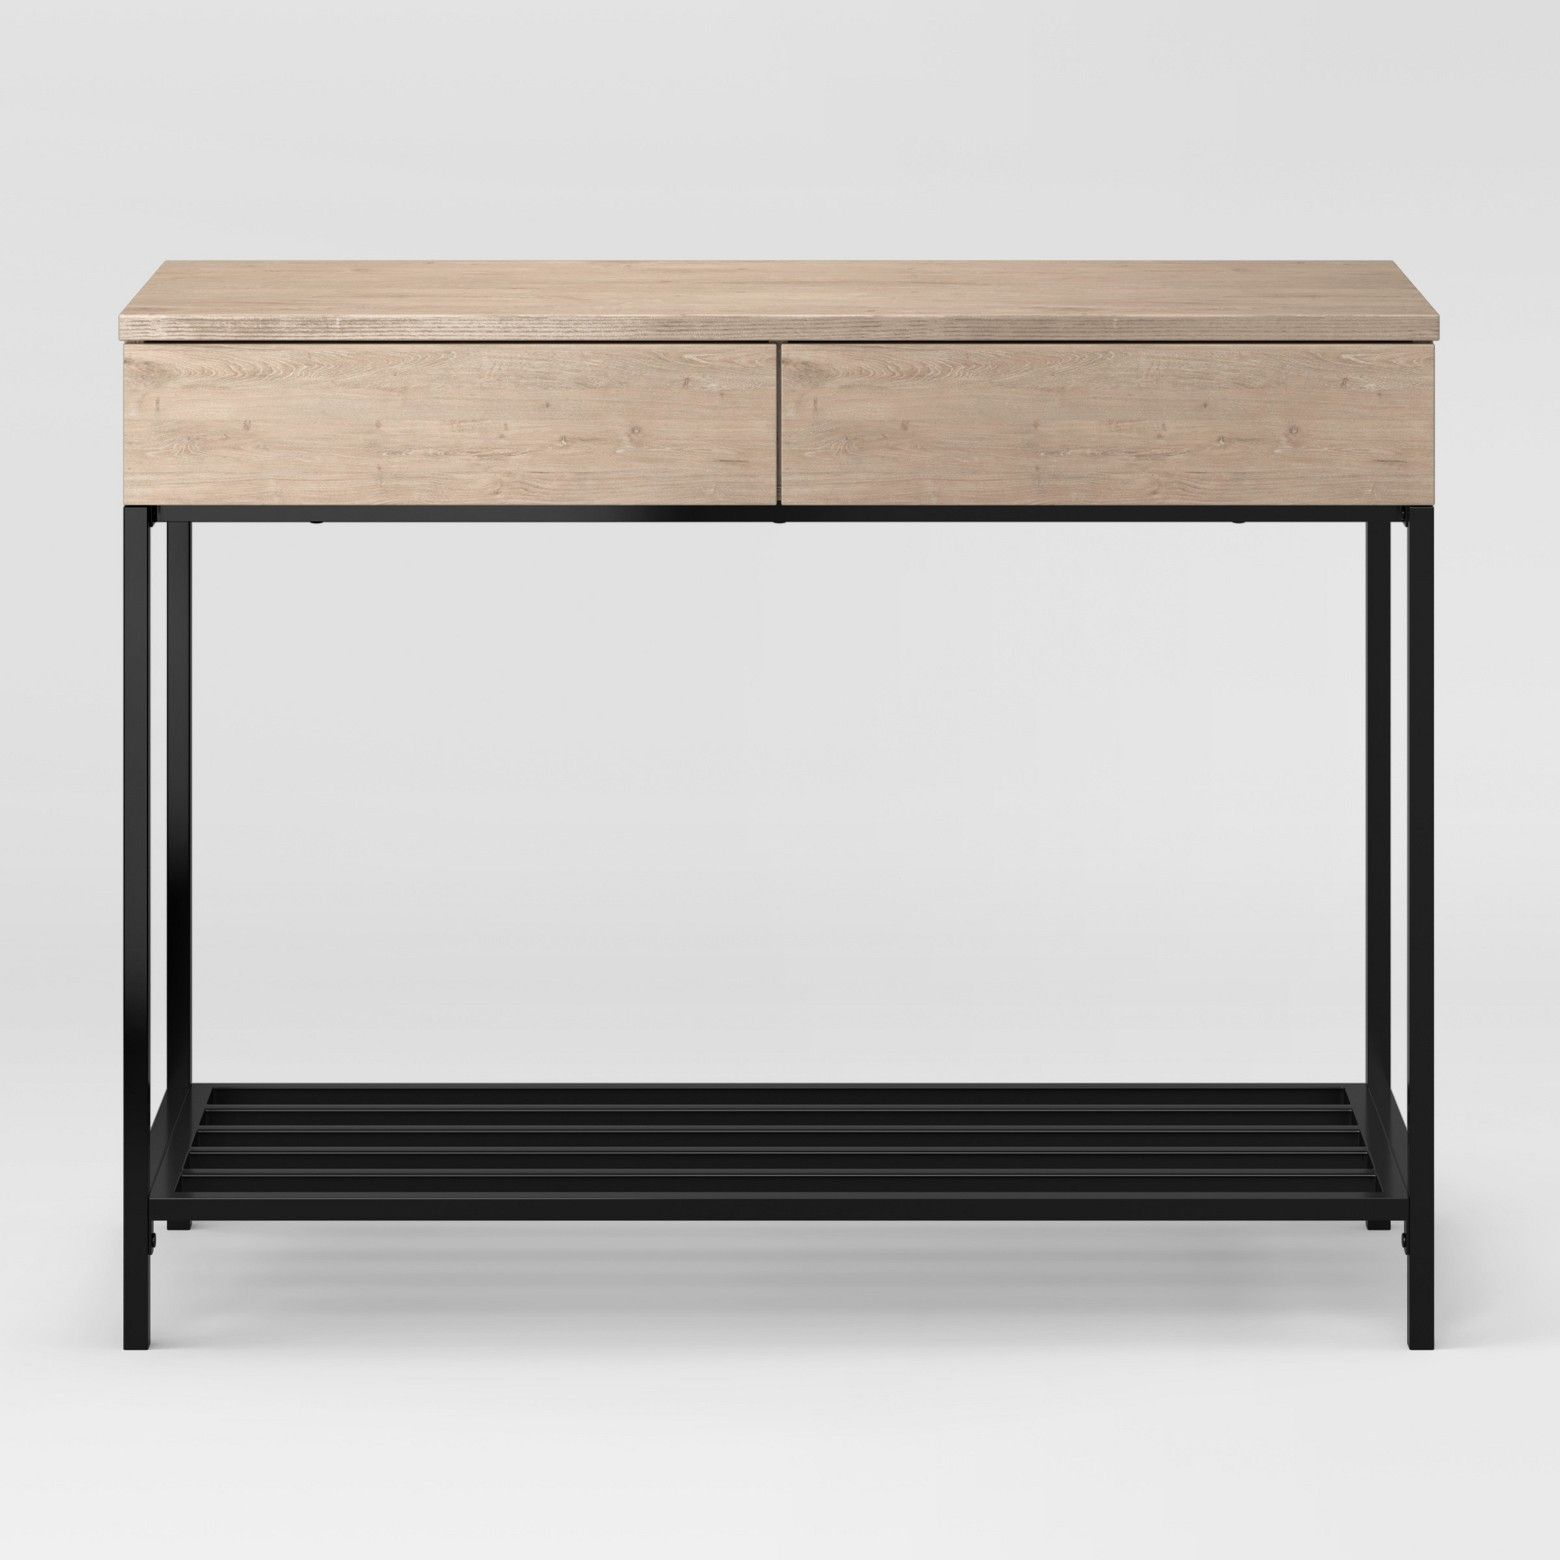 Project 62 Loring Console Table | Accent pieces, Console tables and ...